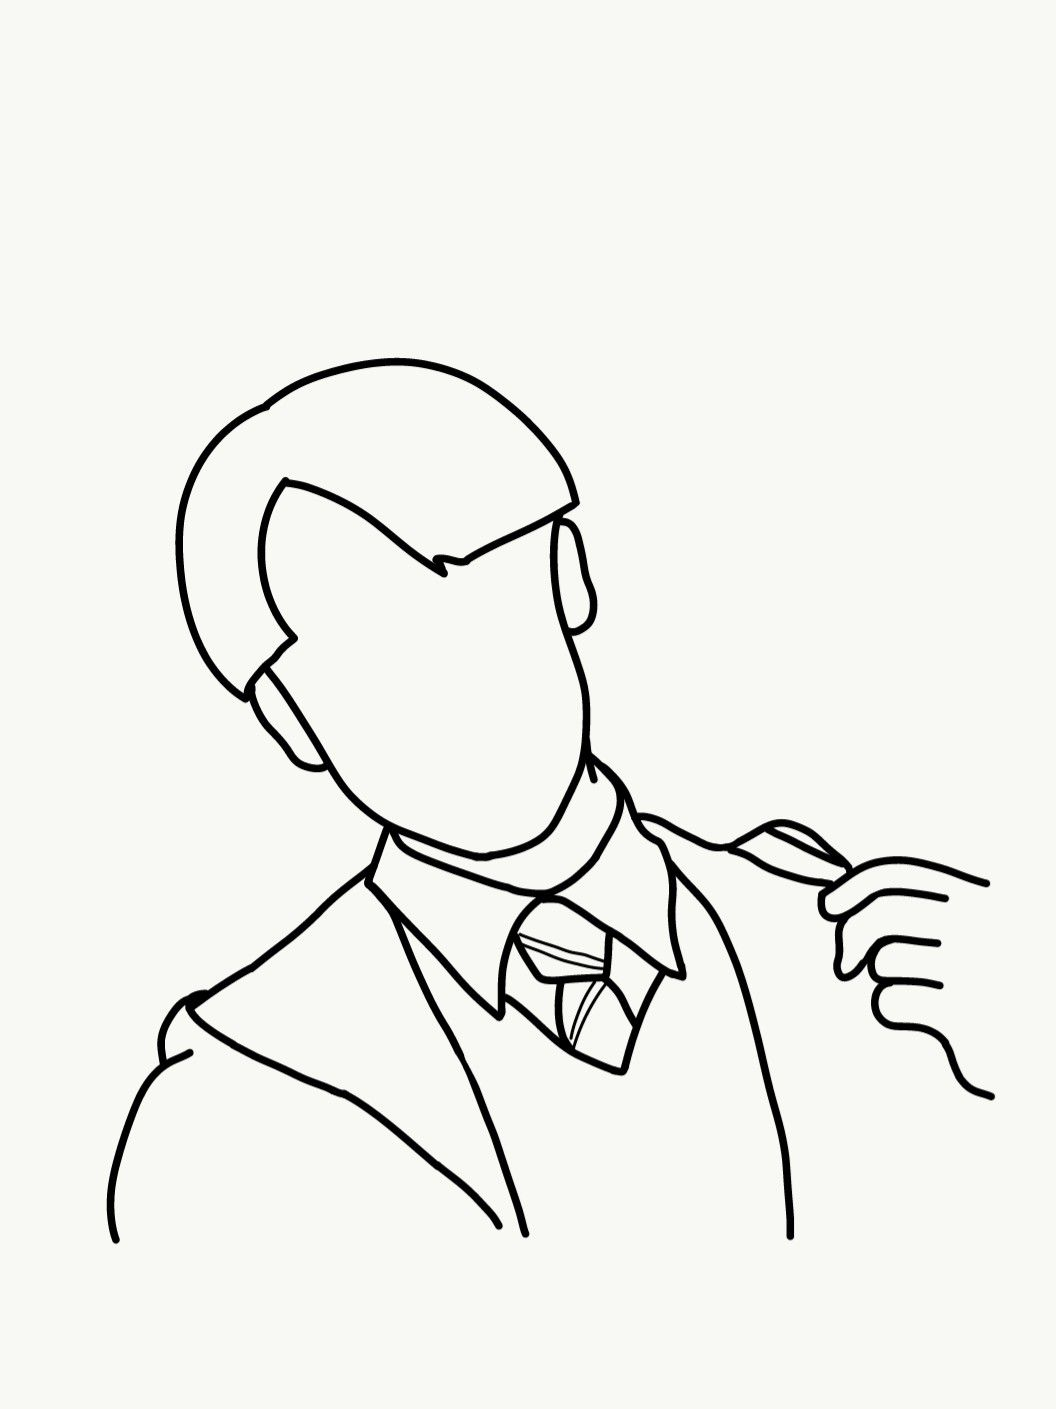 Draco Malfoy Coloring Page Harry Potter Coloring Pages Draco Malfoy Harry Potter Painting